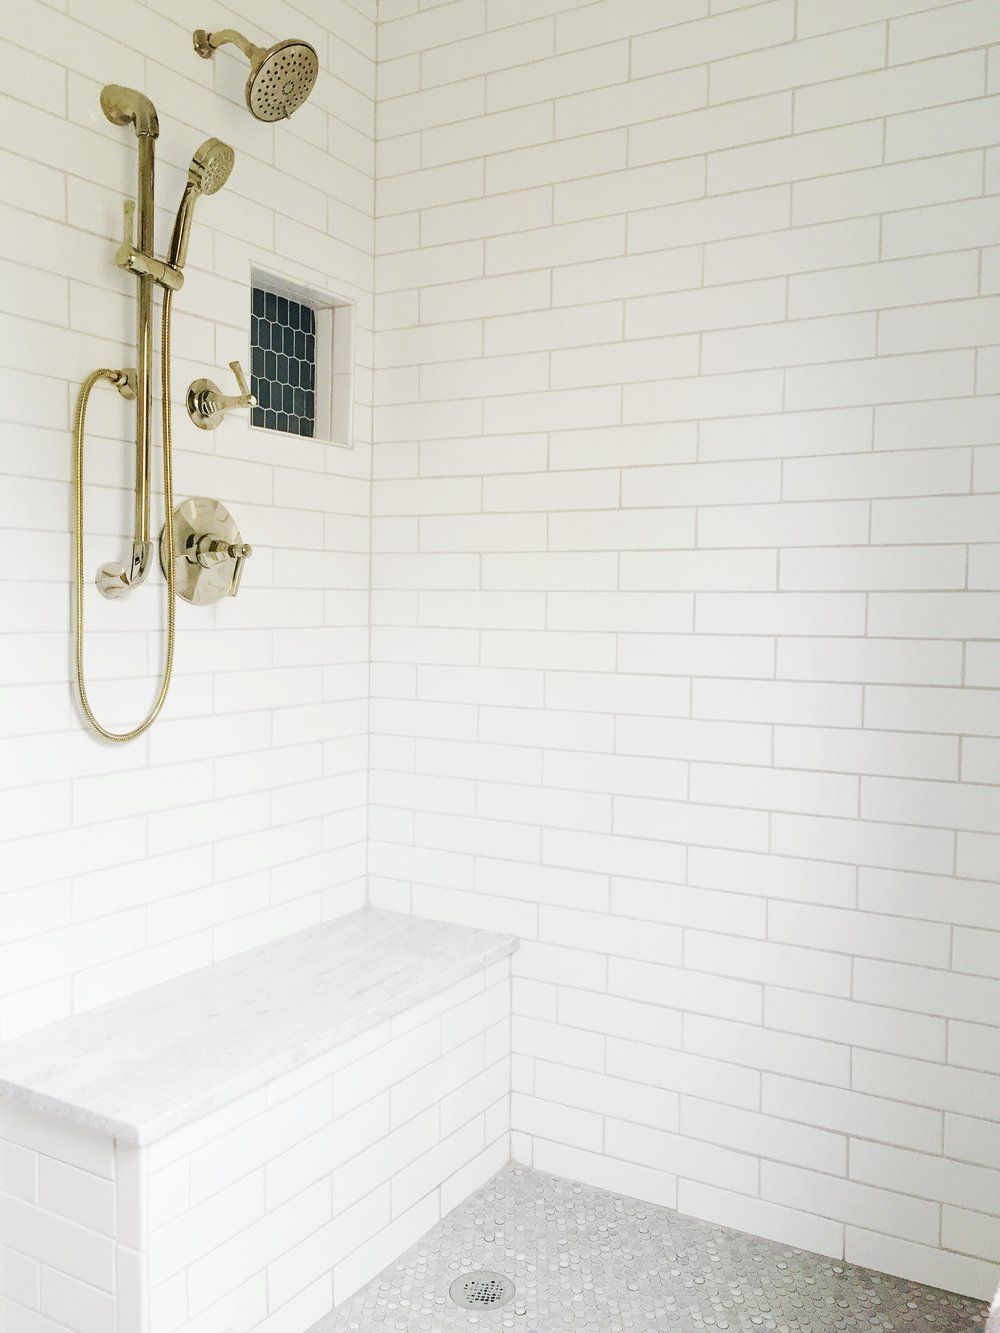 White Subway Tile 3x12 In Our Master Bathroom Renovation Subwaytile Masterbathroom B